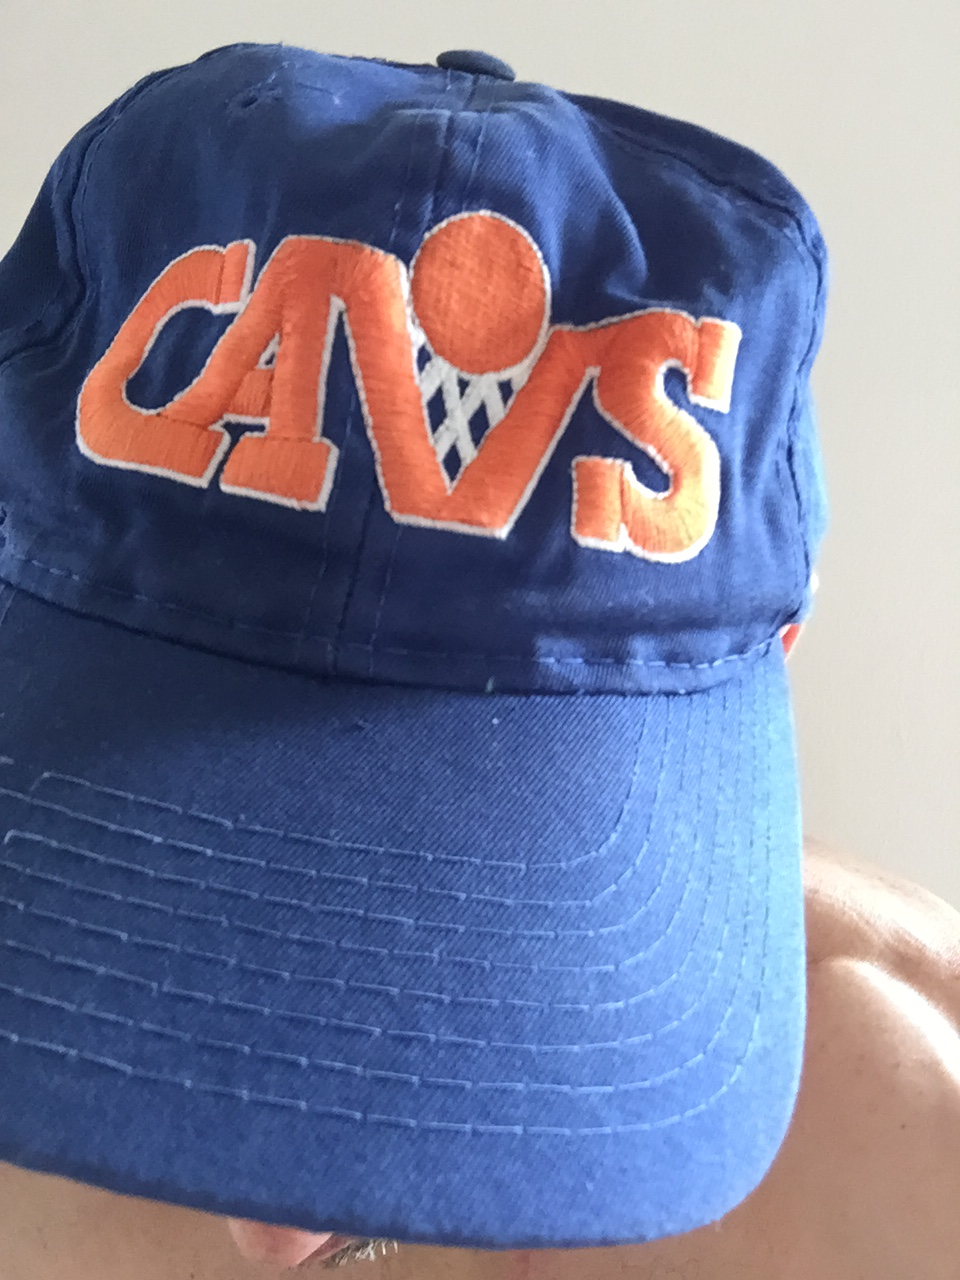 blood and gutstein photo essay proudly wearing my brother s hat this hat belonged to my older brother david who passed away in 1990 anybody who knew david knew his obsessions cleveland sports